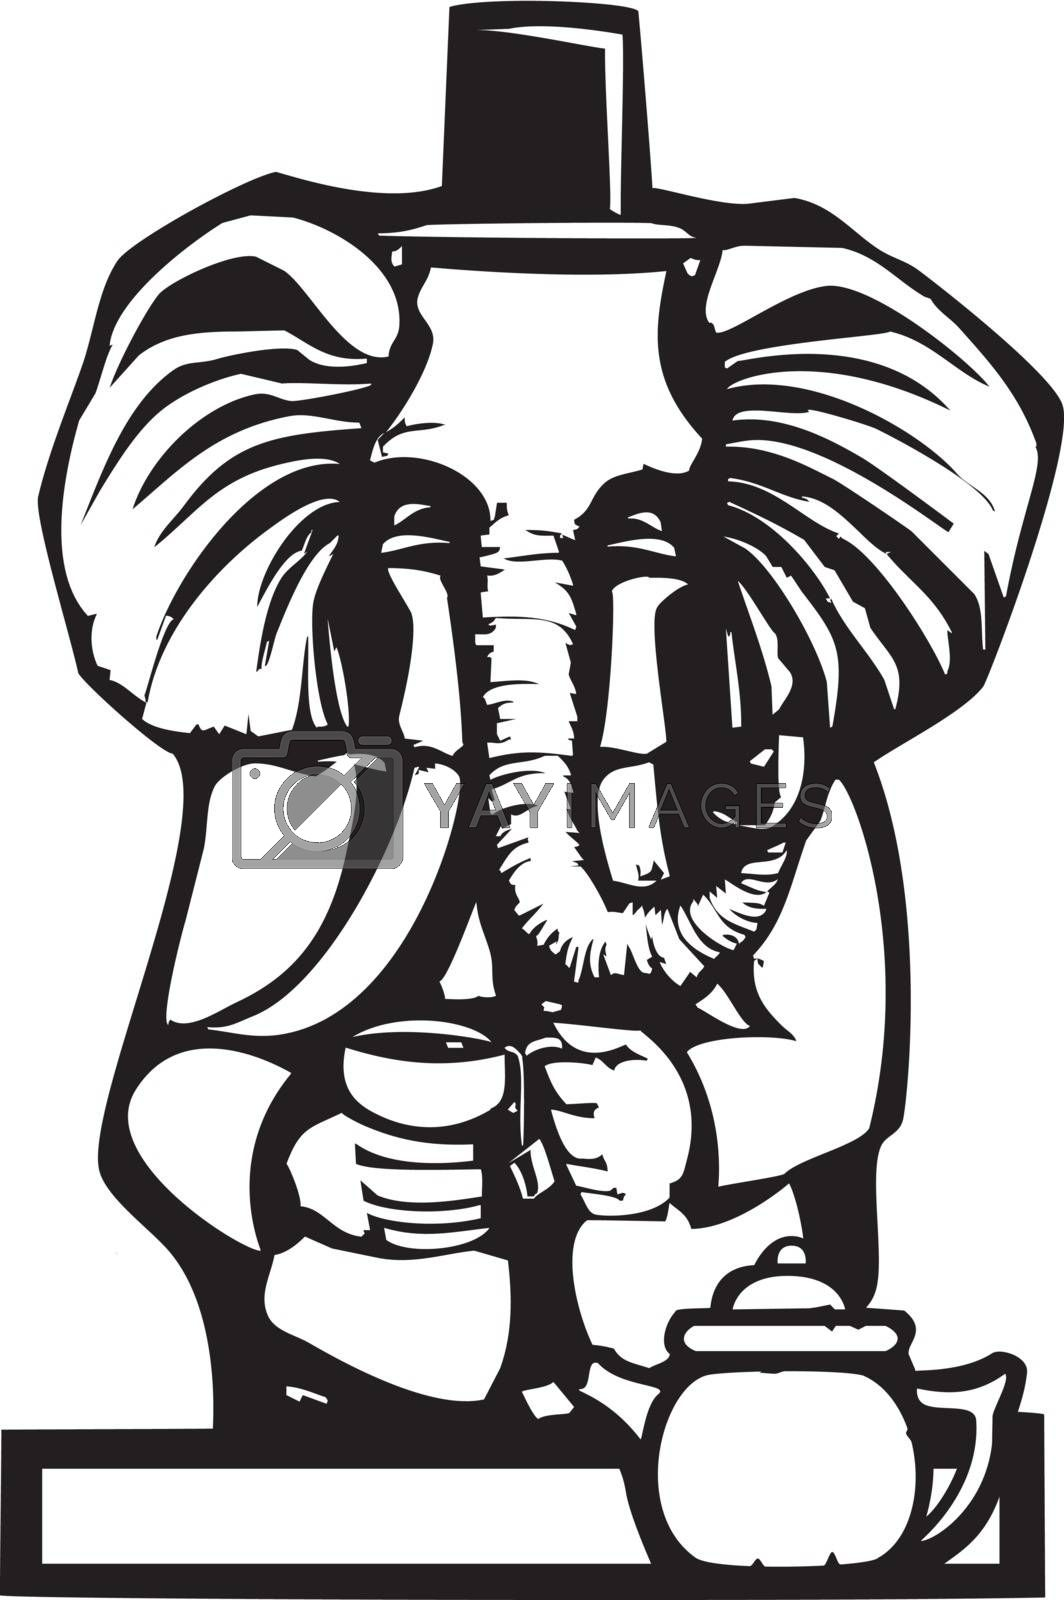 Woodcut style image of a an elephant in human clothes having tea.